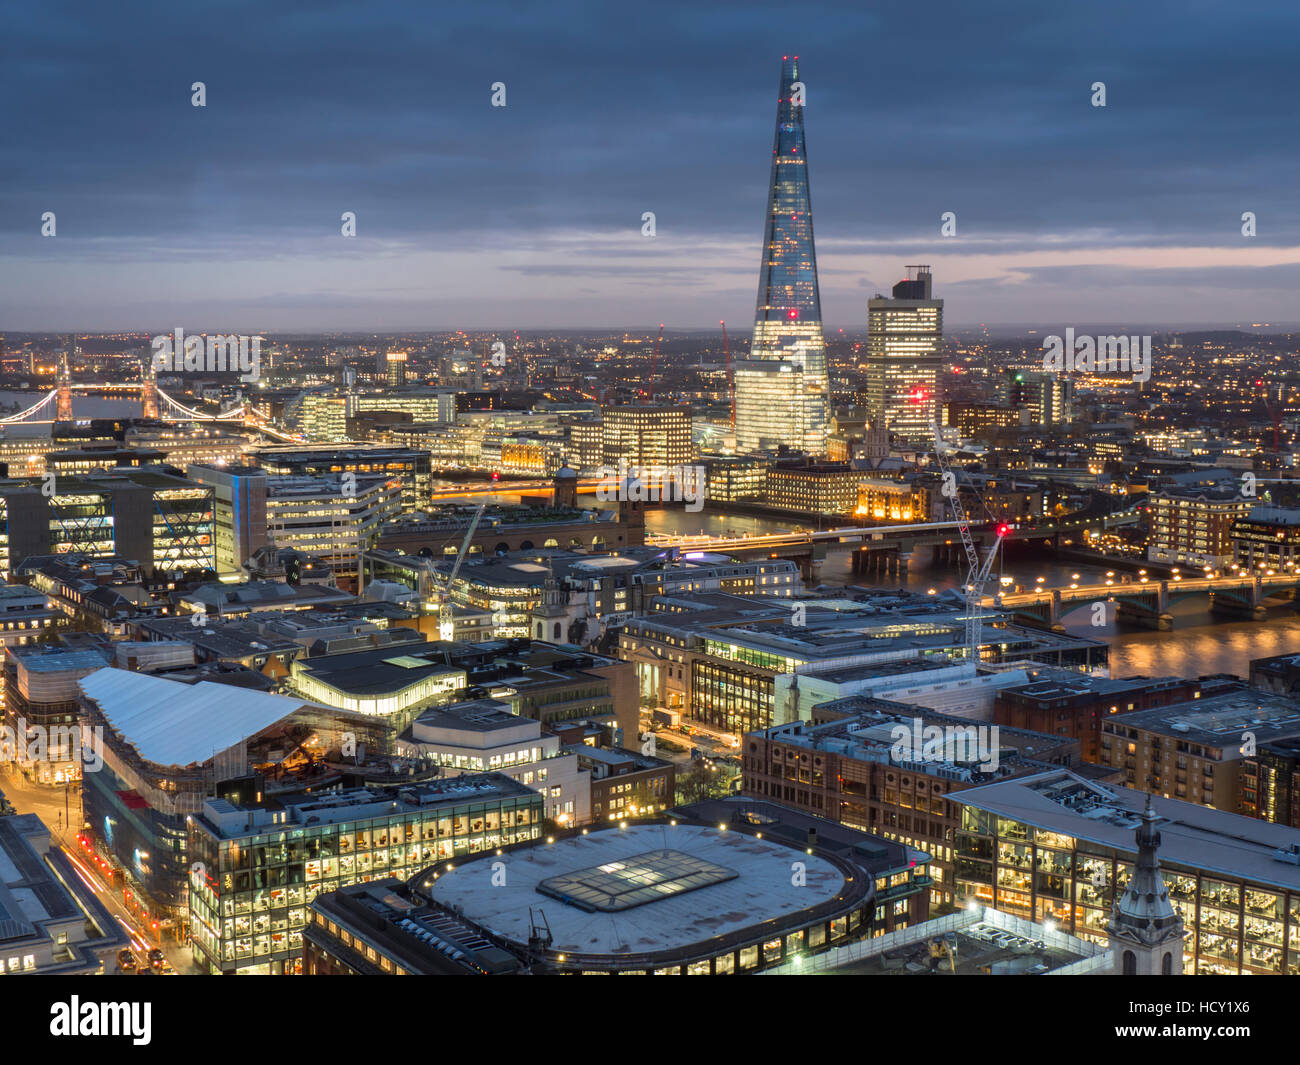 Cityscape with The Shard at dusk, London, UK - Stock Image